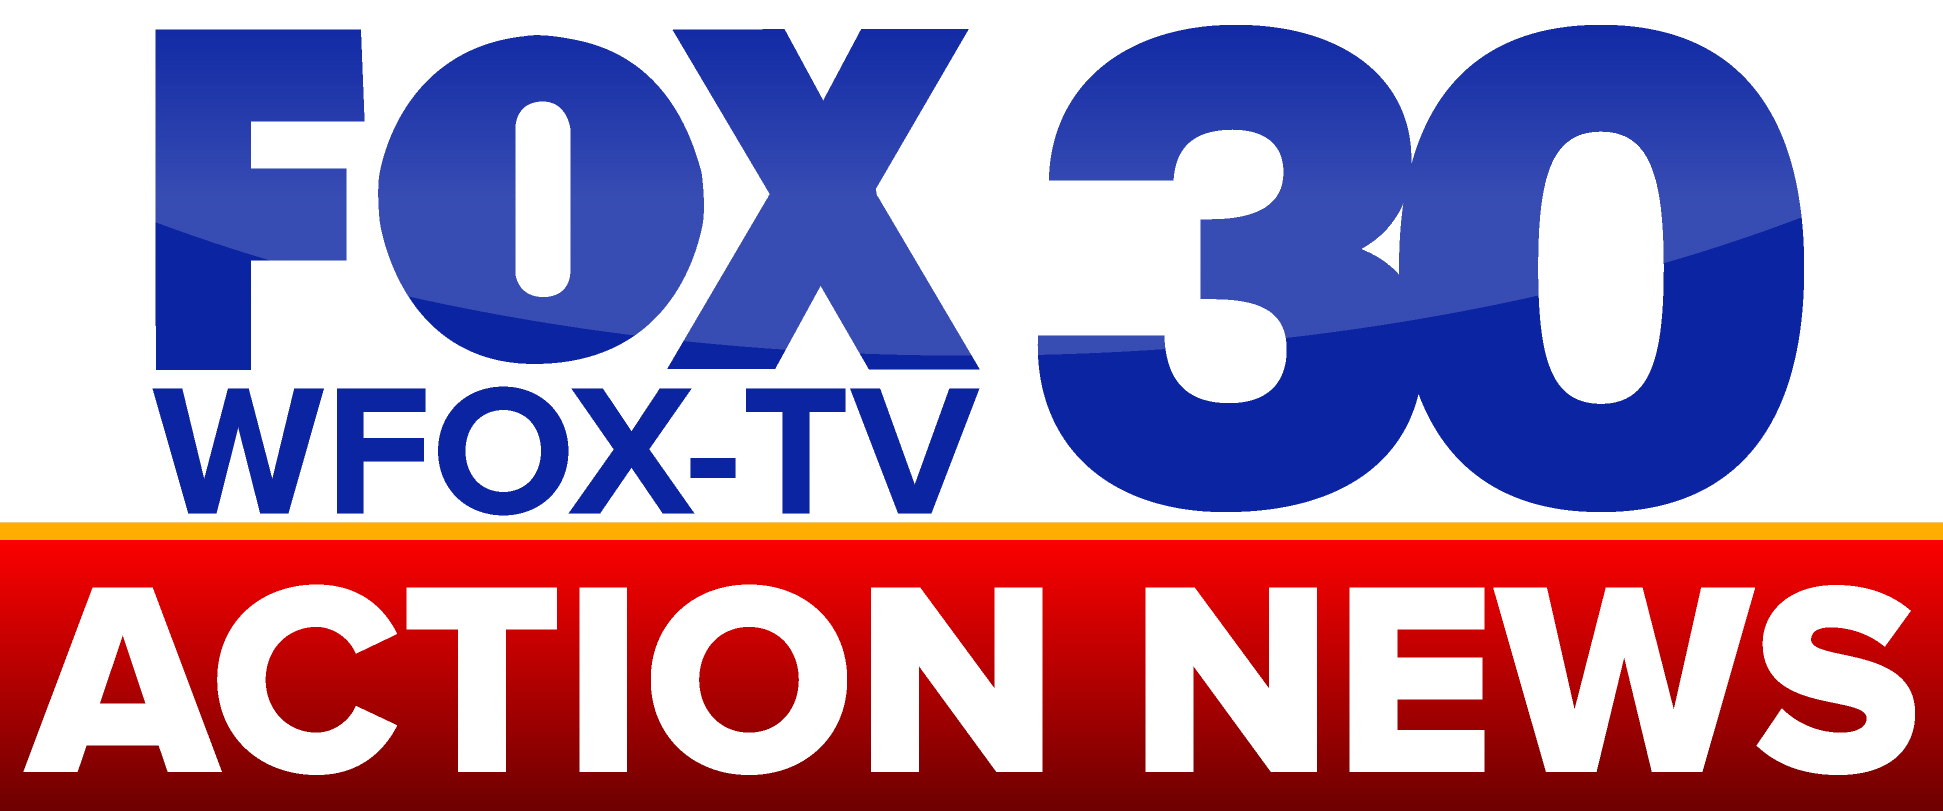 WFOX Jacksonville.png